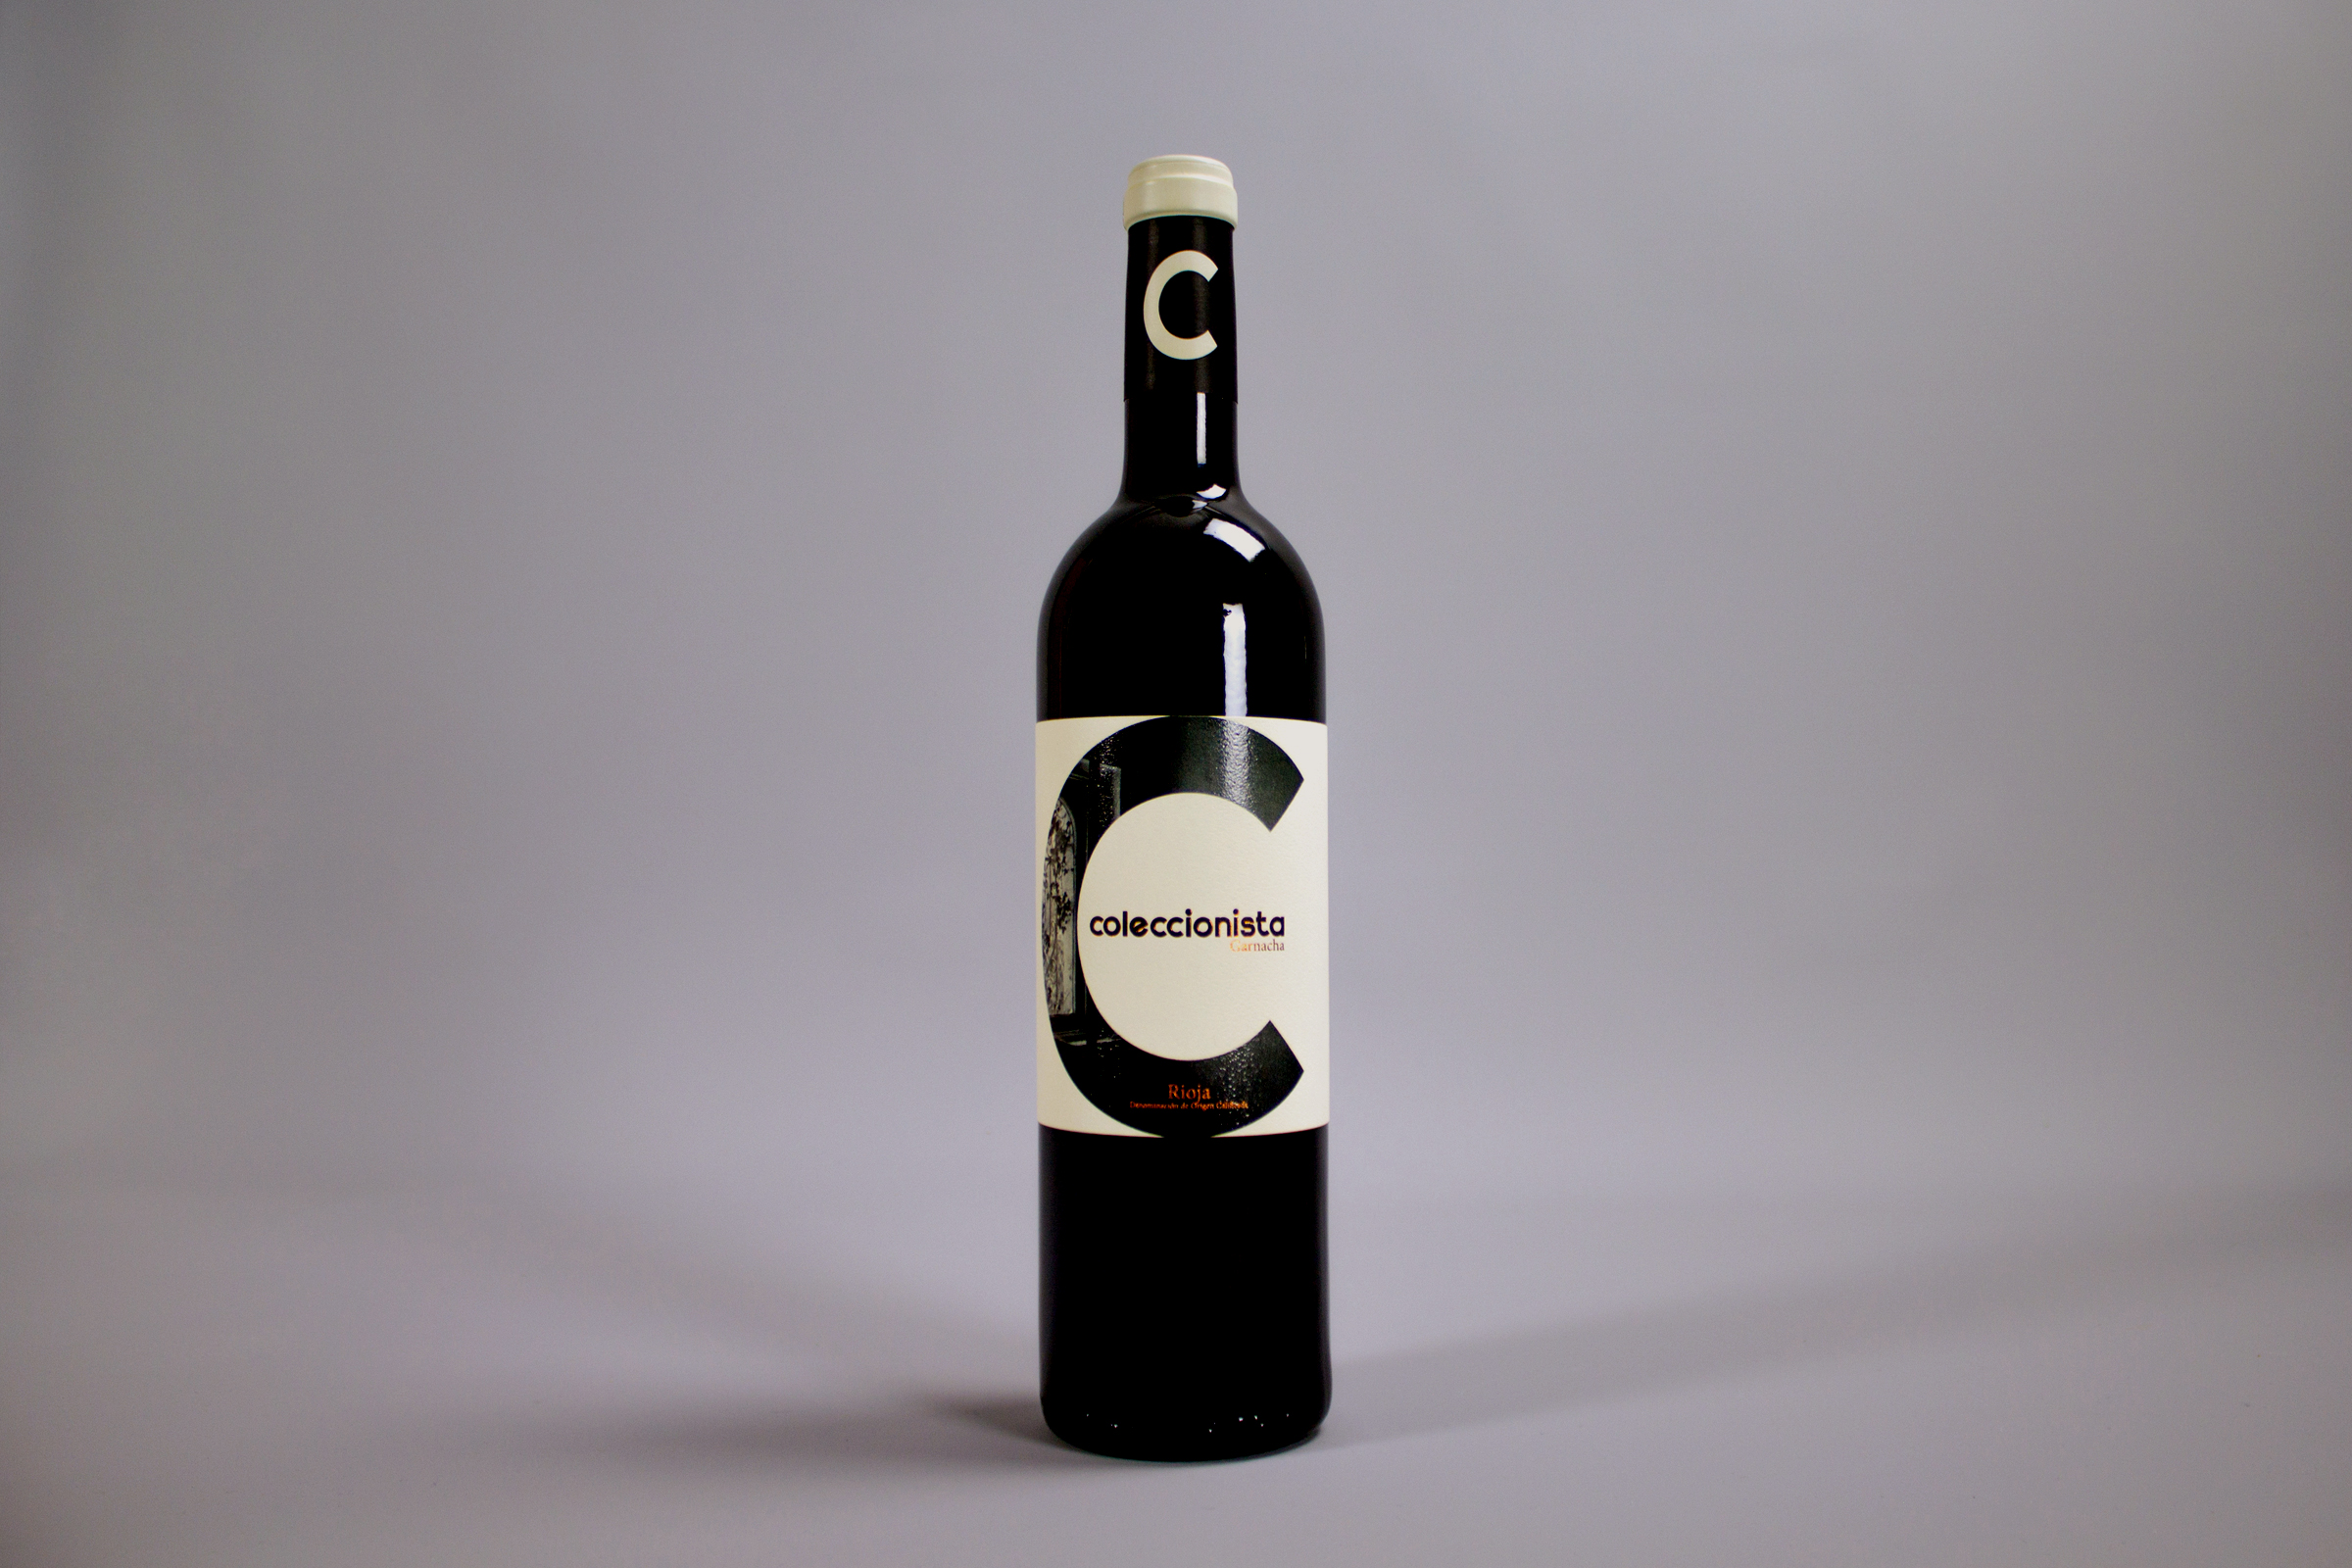 Rioja Wine Brand Creation and Packaging Design aimed at Respecting Wine Lovers / World Brand & Packaging Design Society